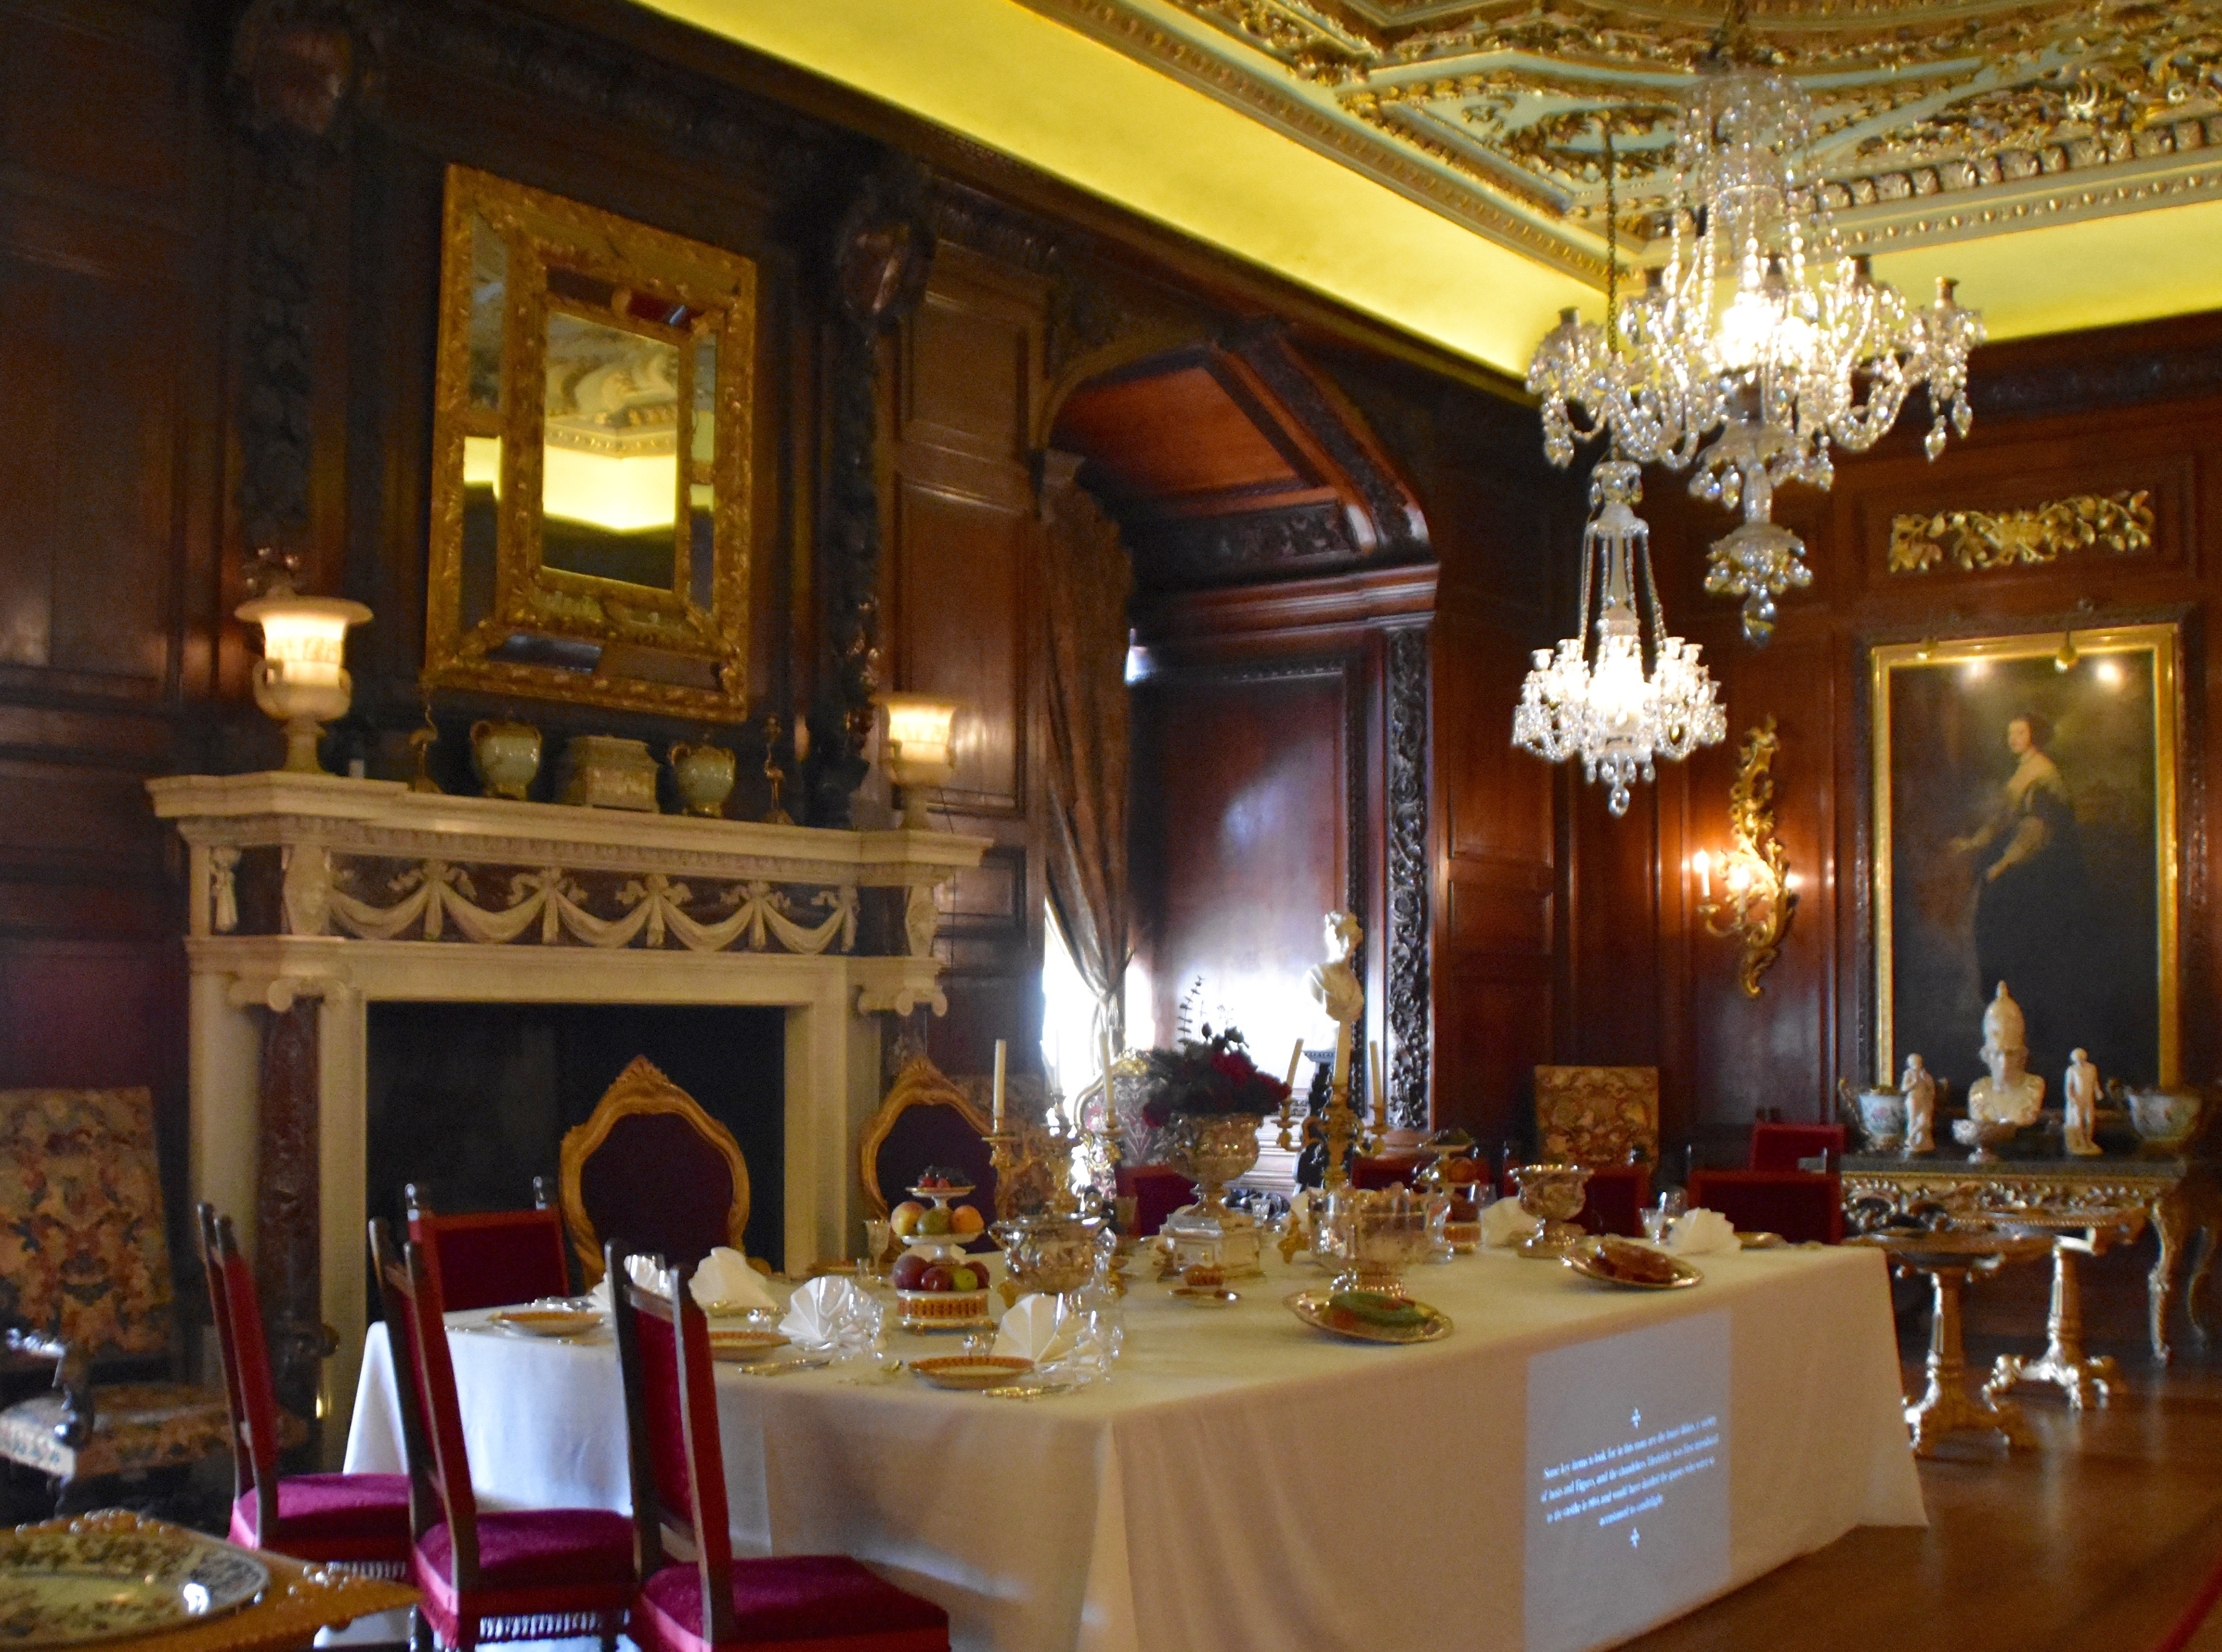 Warwick Castle 1 000 Years Of British, Warwick Castle State Dining Room Set